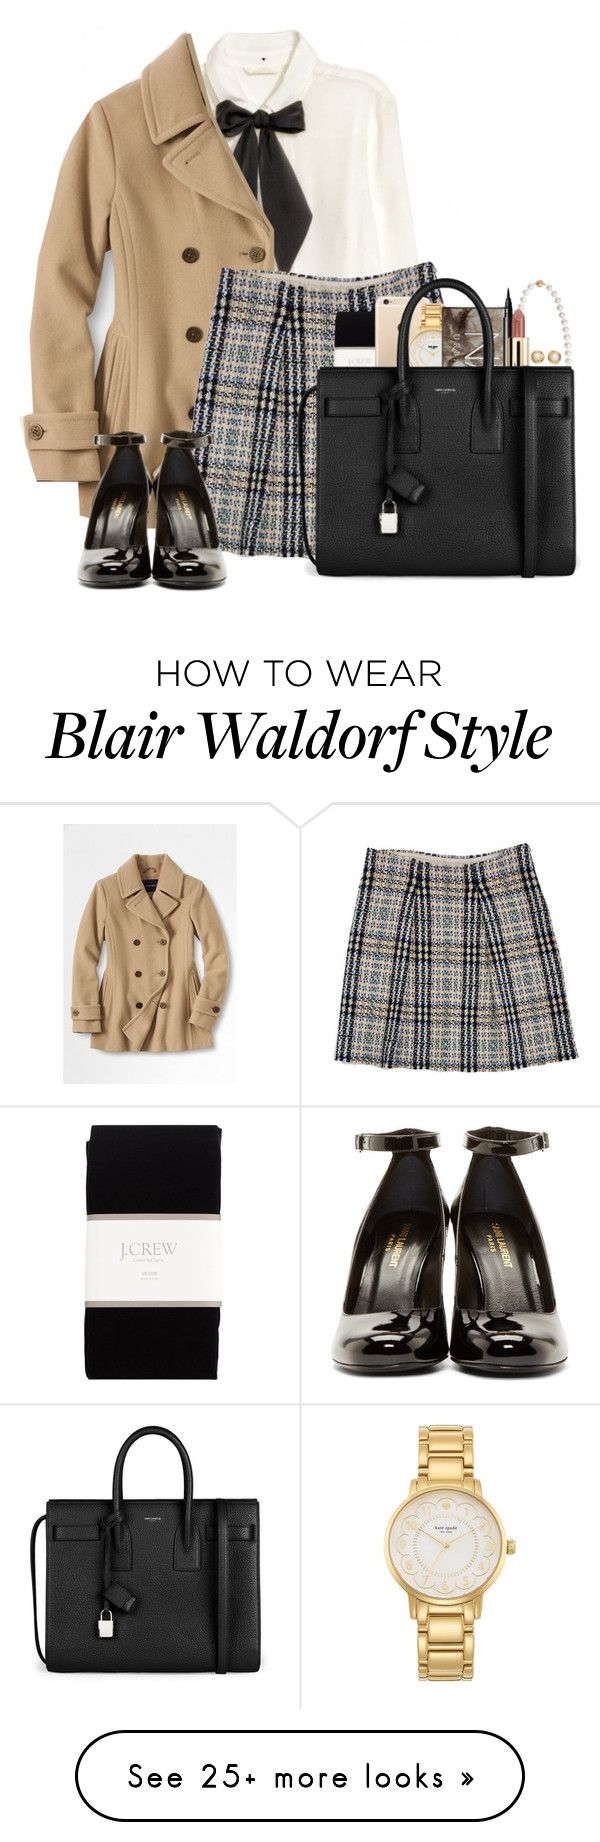 do yourself a favor and stop talking right now blair waldorf by ellapearlrose on Polyvore featuring HM, Lands End, Burberry, Yves Saint Laurent, J.Crew, Kate Spade, Urban Decay, Cobra  Bellamy, NARS Cosmetics and Chanel jetzt neu! ->. . . . . der Blog für den Gentleman.viele interessante Beiträge  - www.thegentlemanclub.de/blog